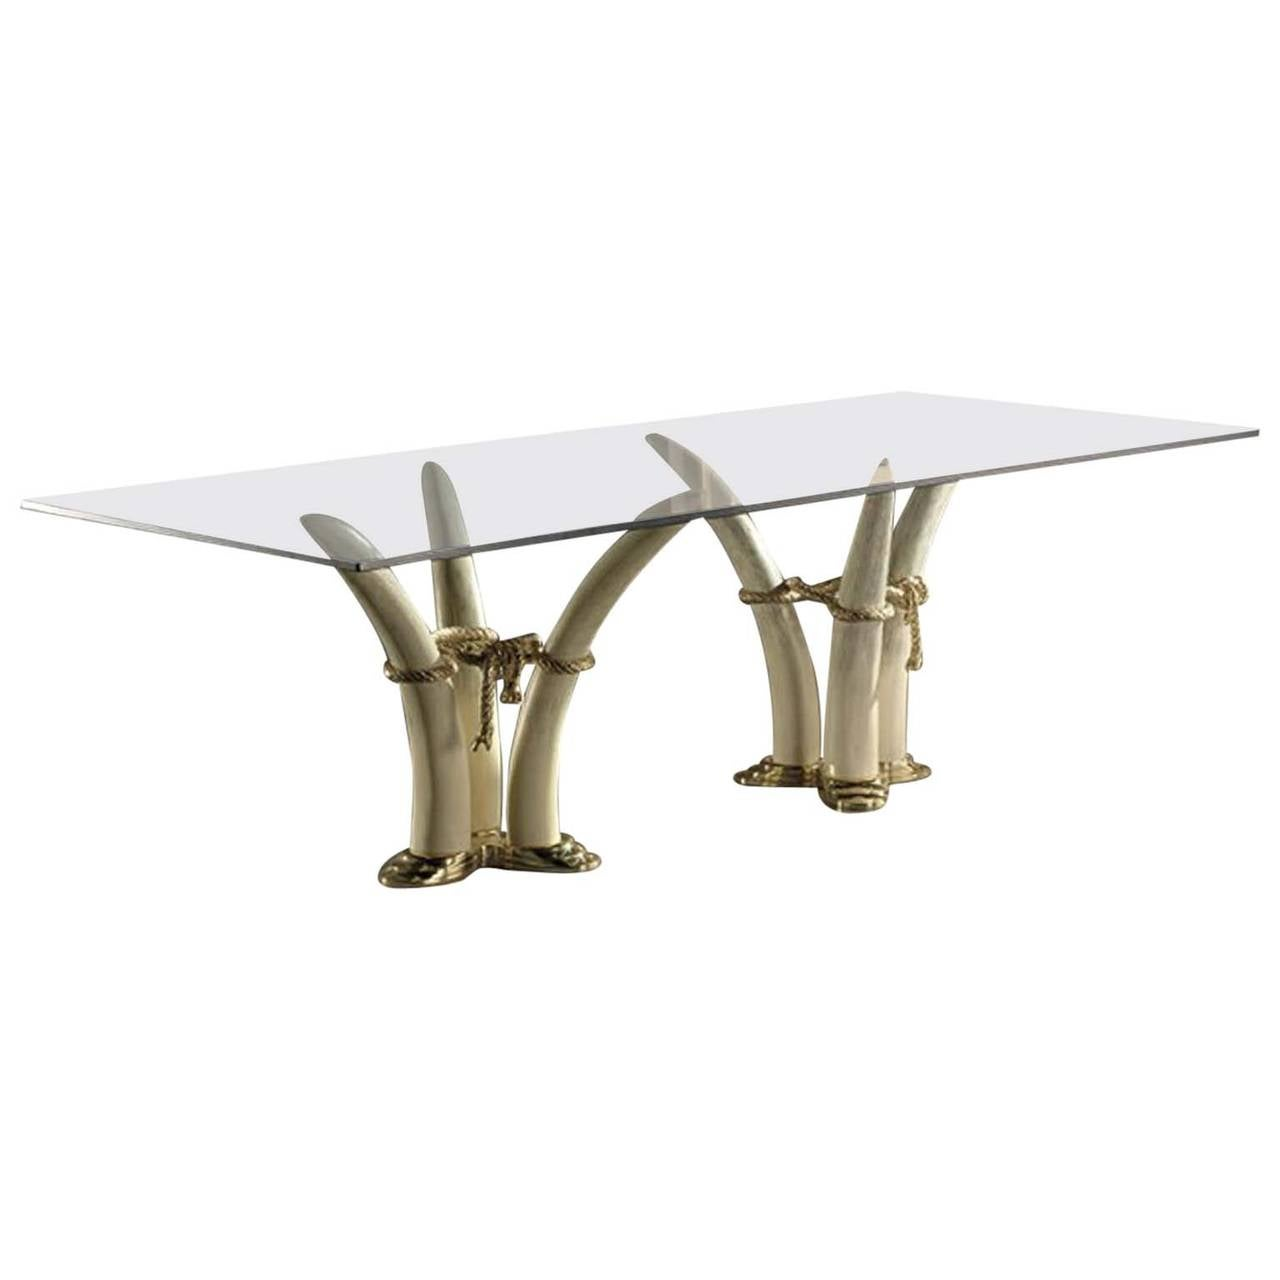 Dining Table by Valenti, Barcelona, Spain, circa 1970-1980